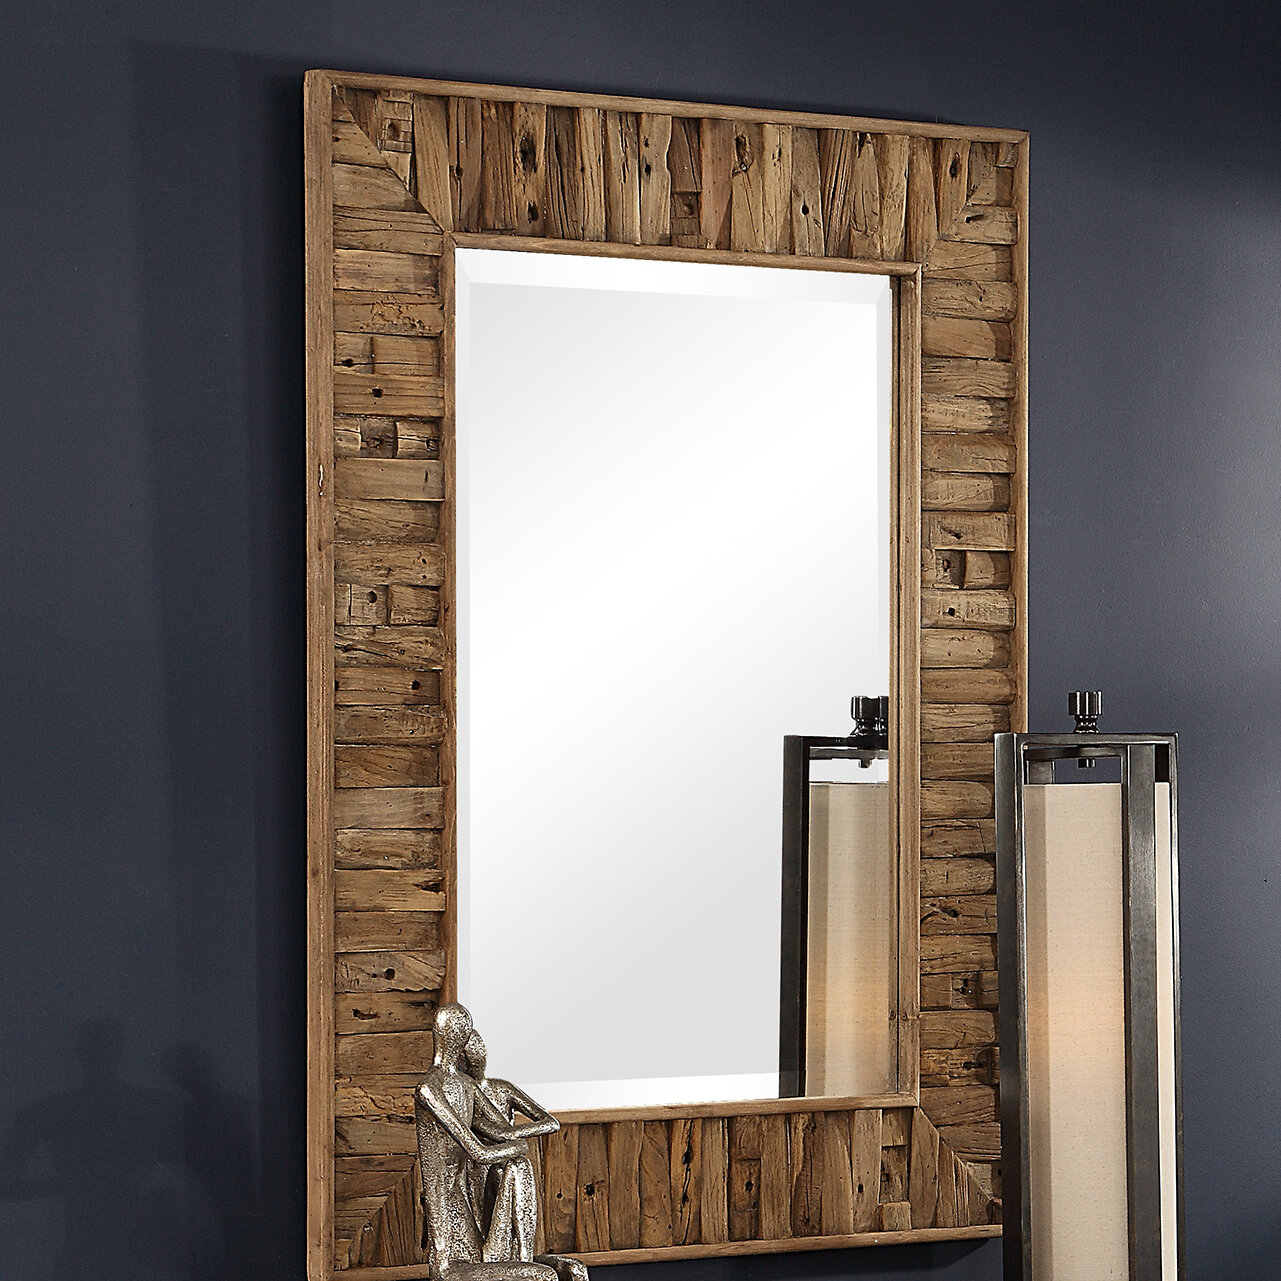 Reclaimed Mirror | Wayfair Regarding Booth Reclaimed Wall Mirrors Accent (Image 15 of 20)